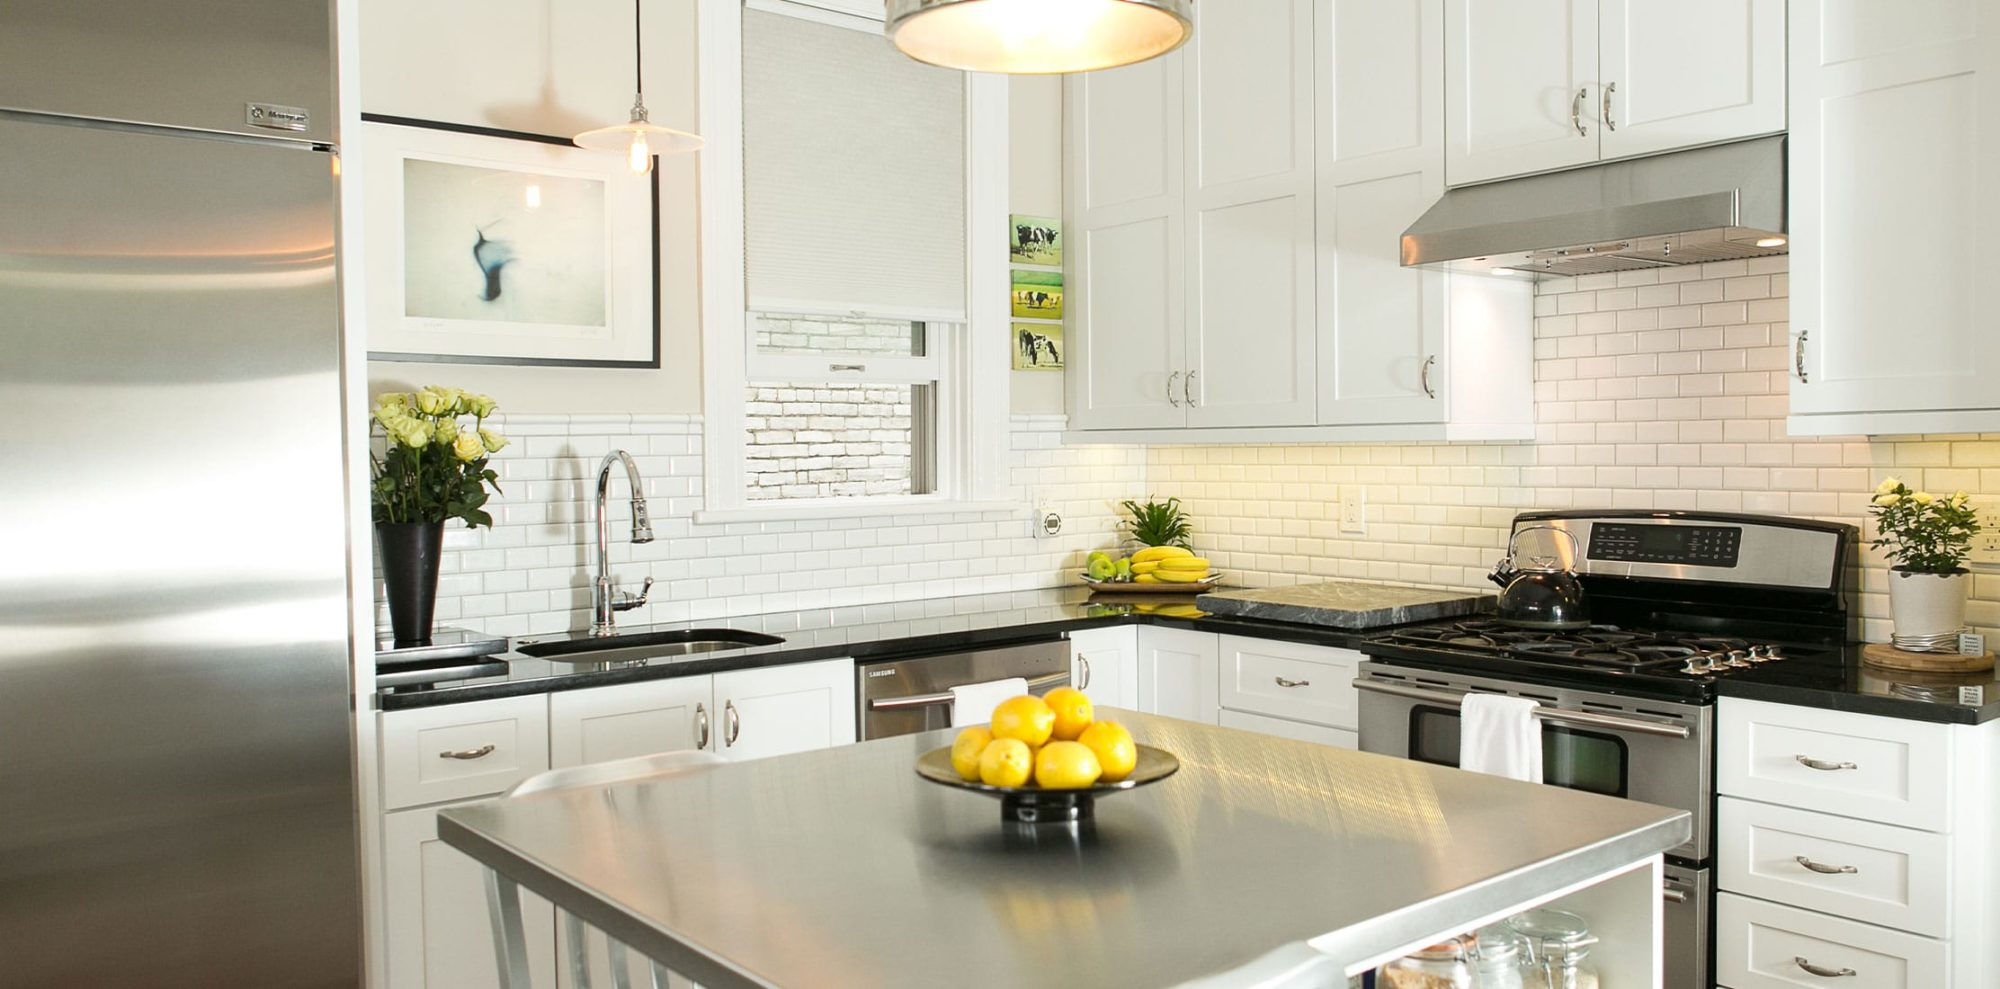 Stainless steel appliances with matching island in white renovated kitchen